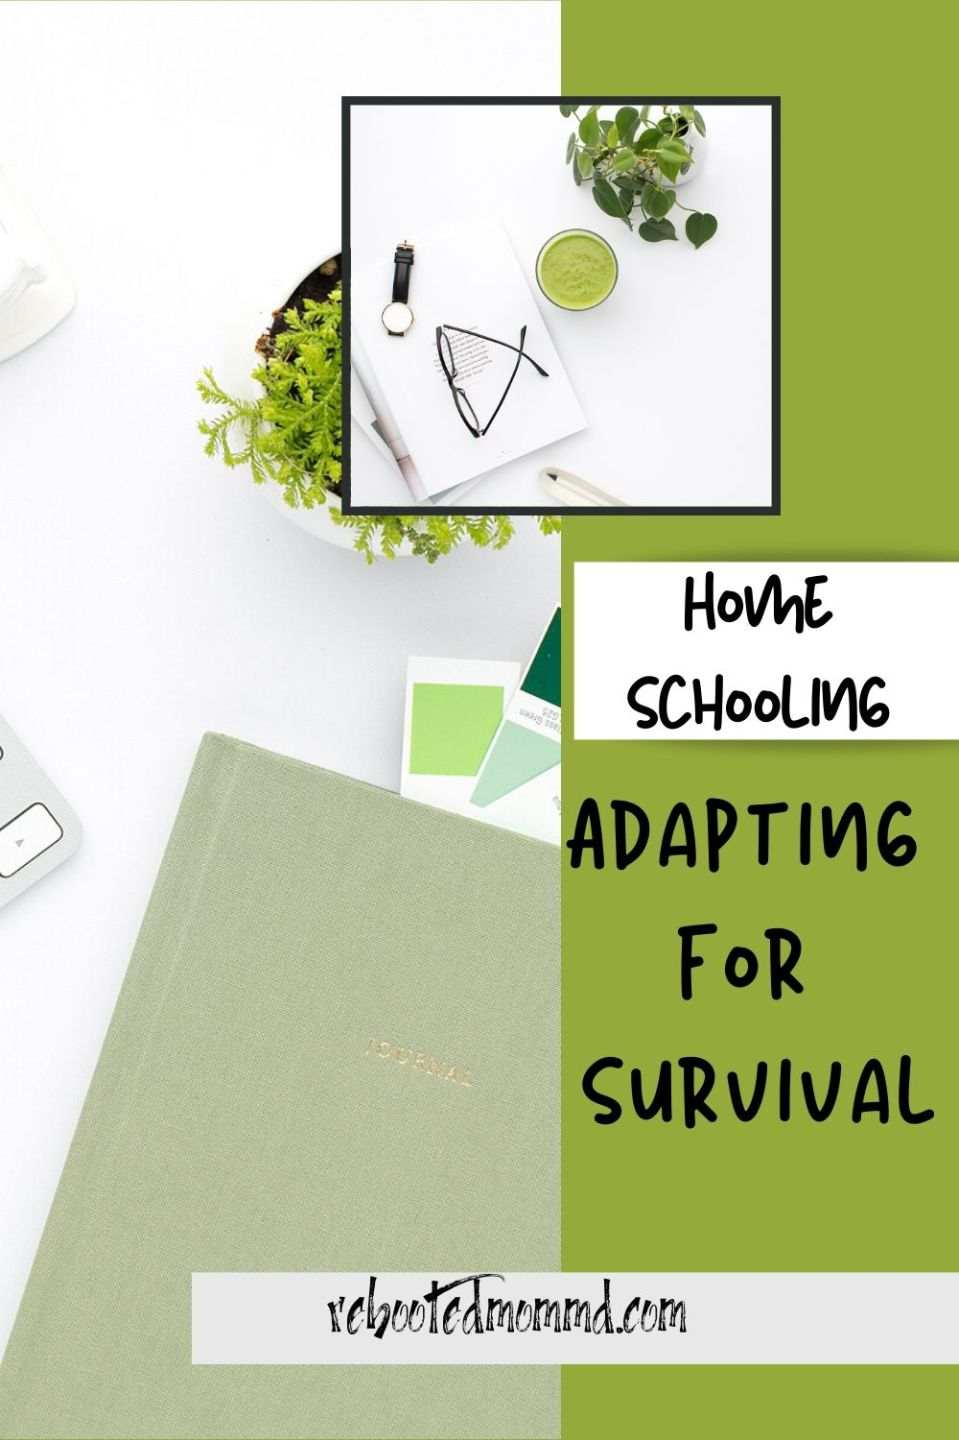 Homeschooling: Adapt to Survive